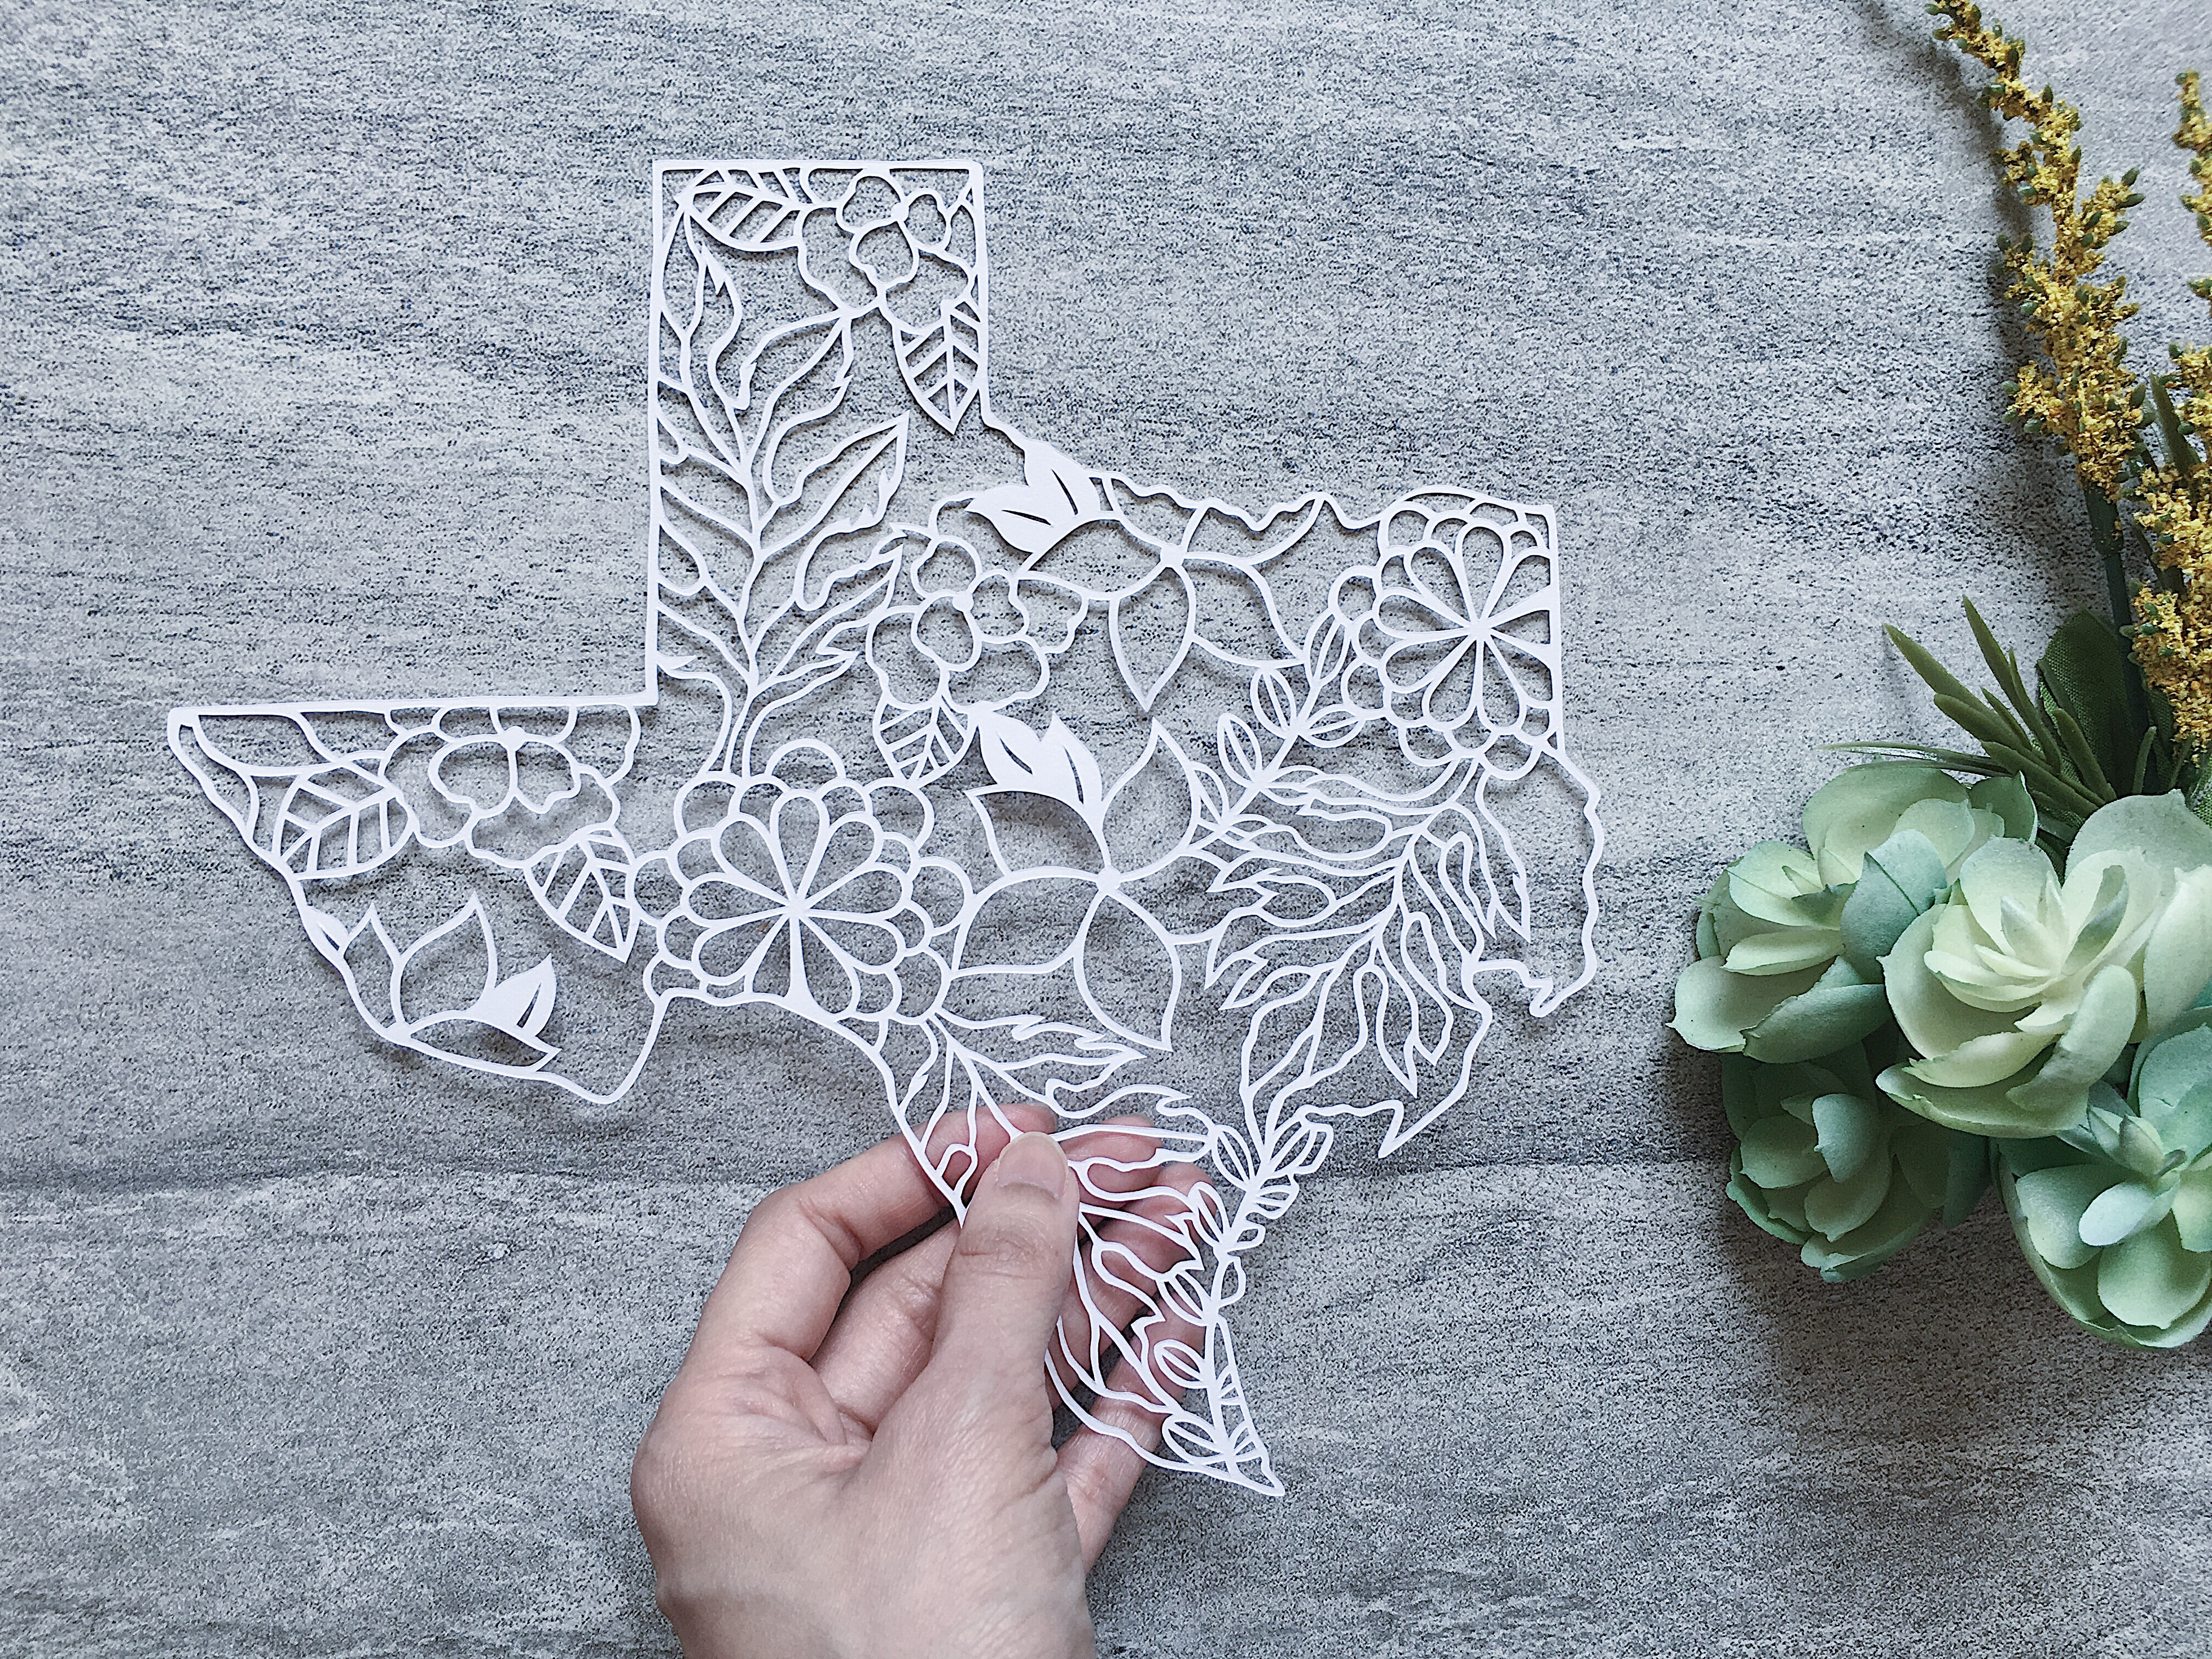 scherenschnitte-paperut-art-texas-state-map-contemporary-art-home-decor (1)